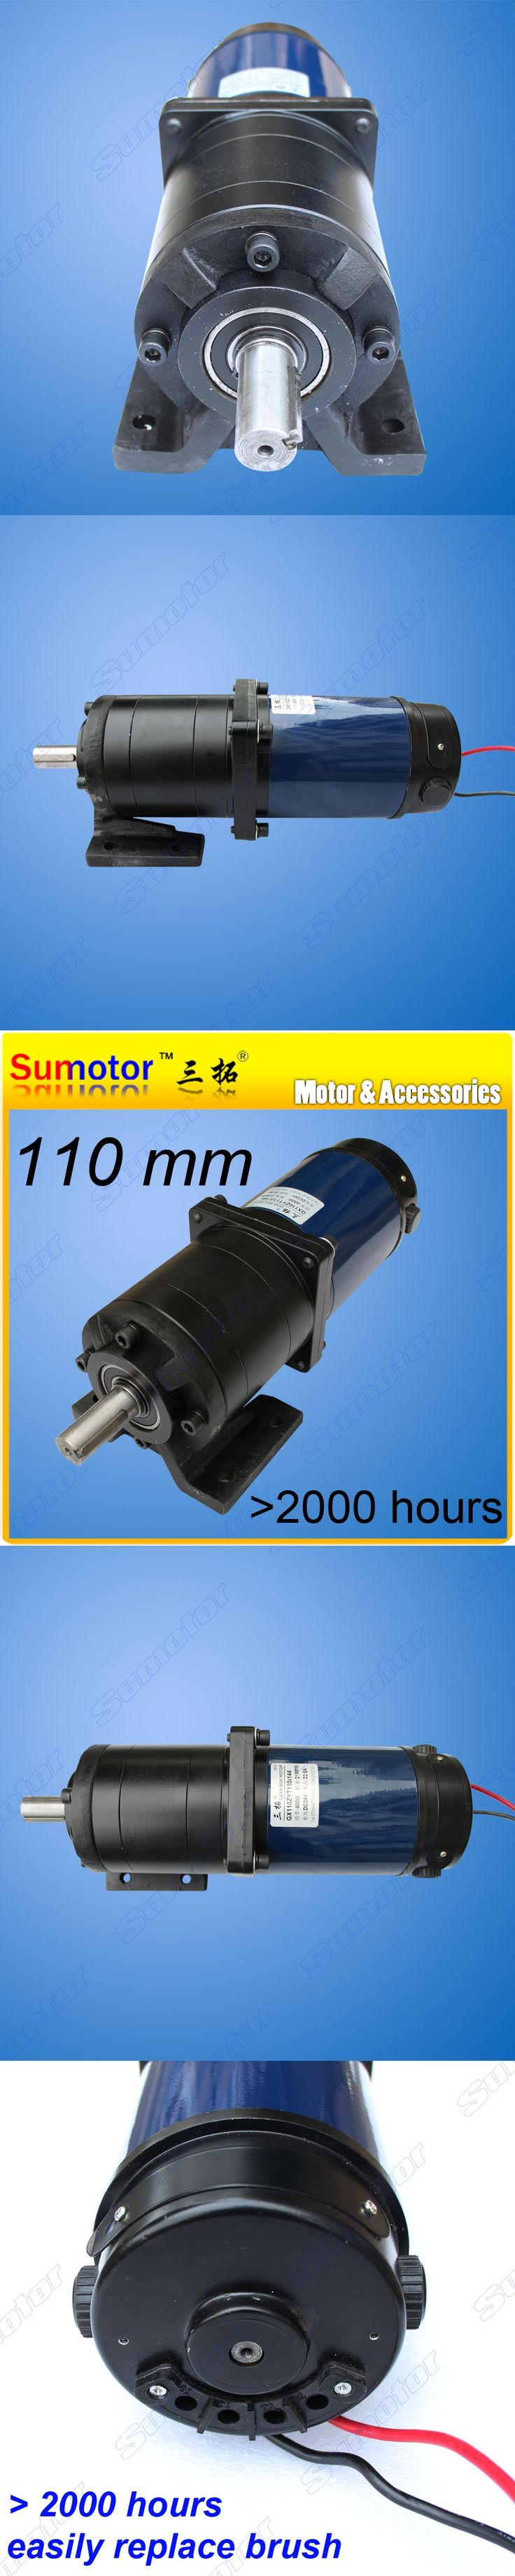 GX110 24V low speed DC Planetary geared motor DC brushed motor High Quality large torque Planetary gear box Truck tarpaulin